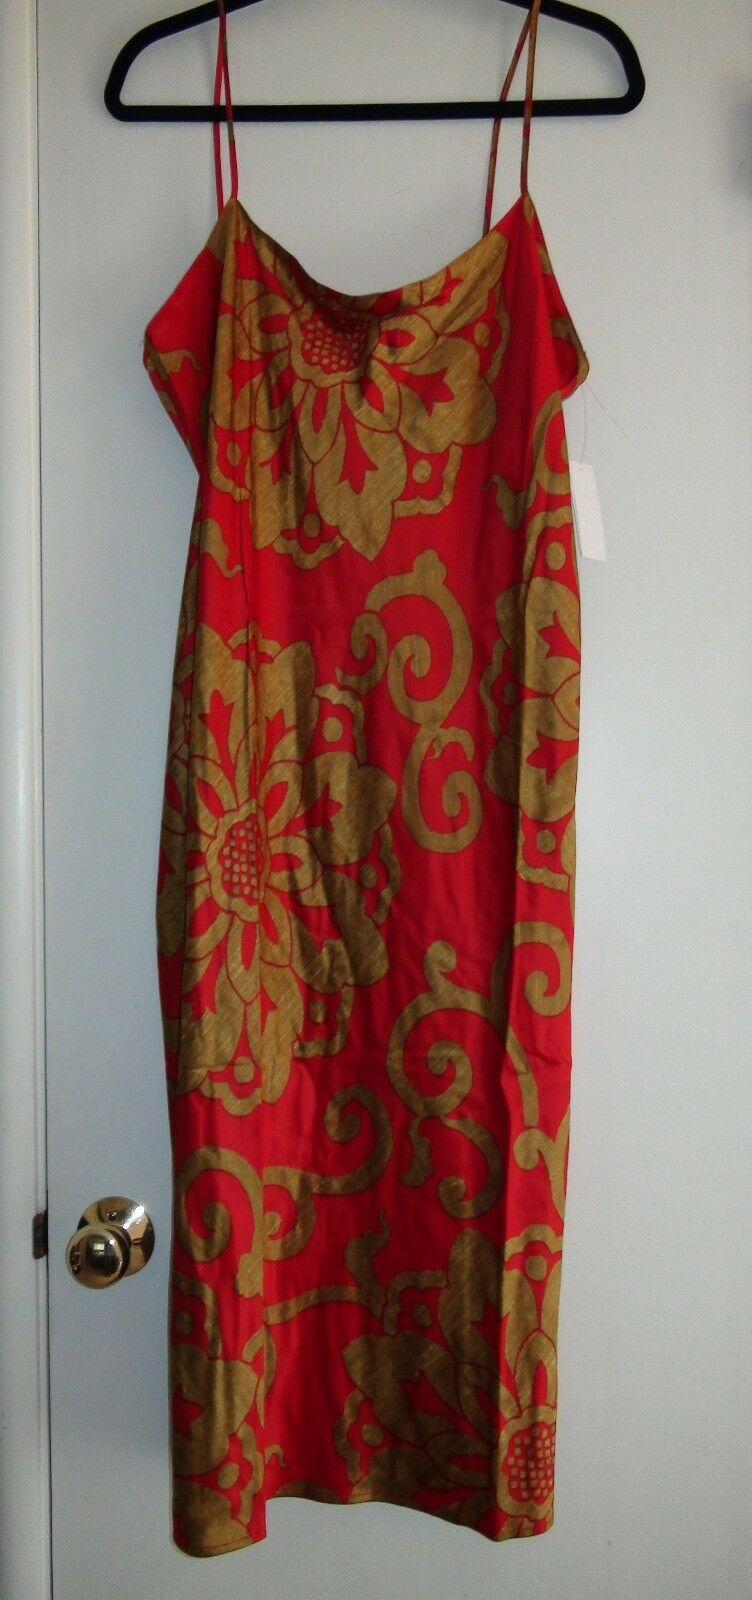 NATORI Private Luxuries Medallion Red gold Gown NWT  110 Sz S M & L V73047A